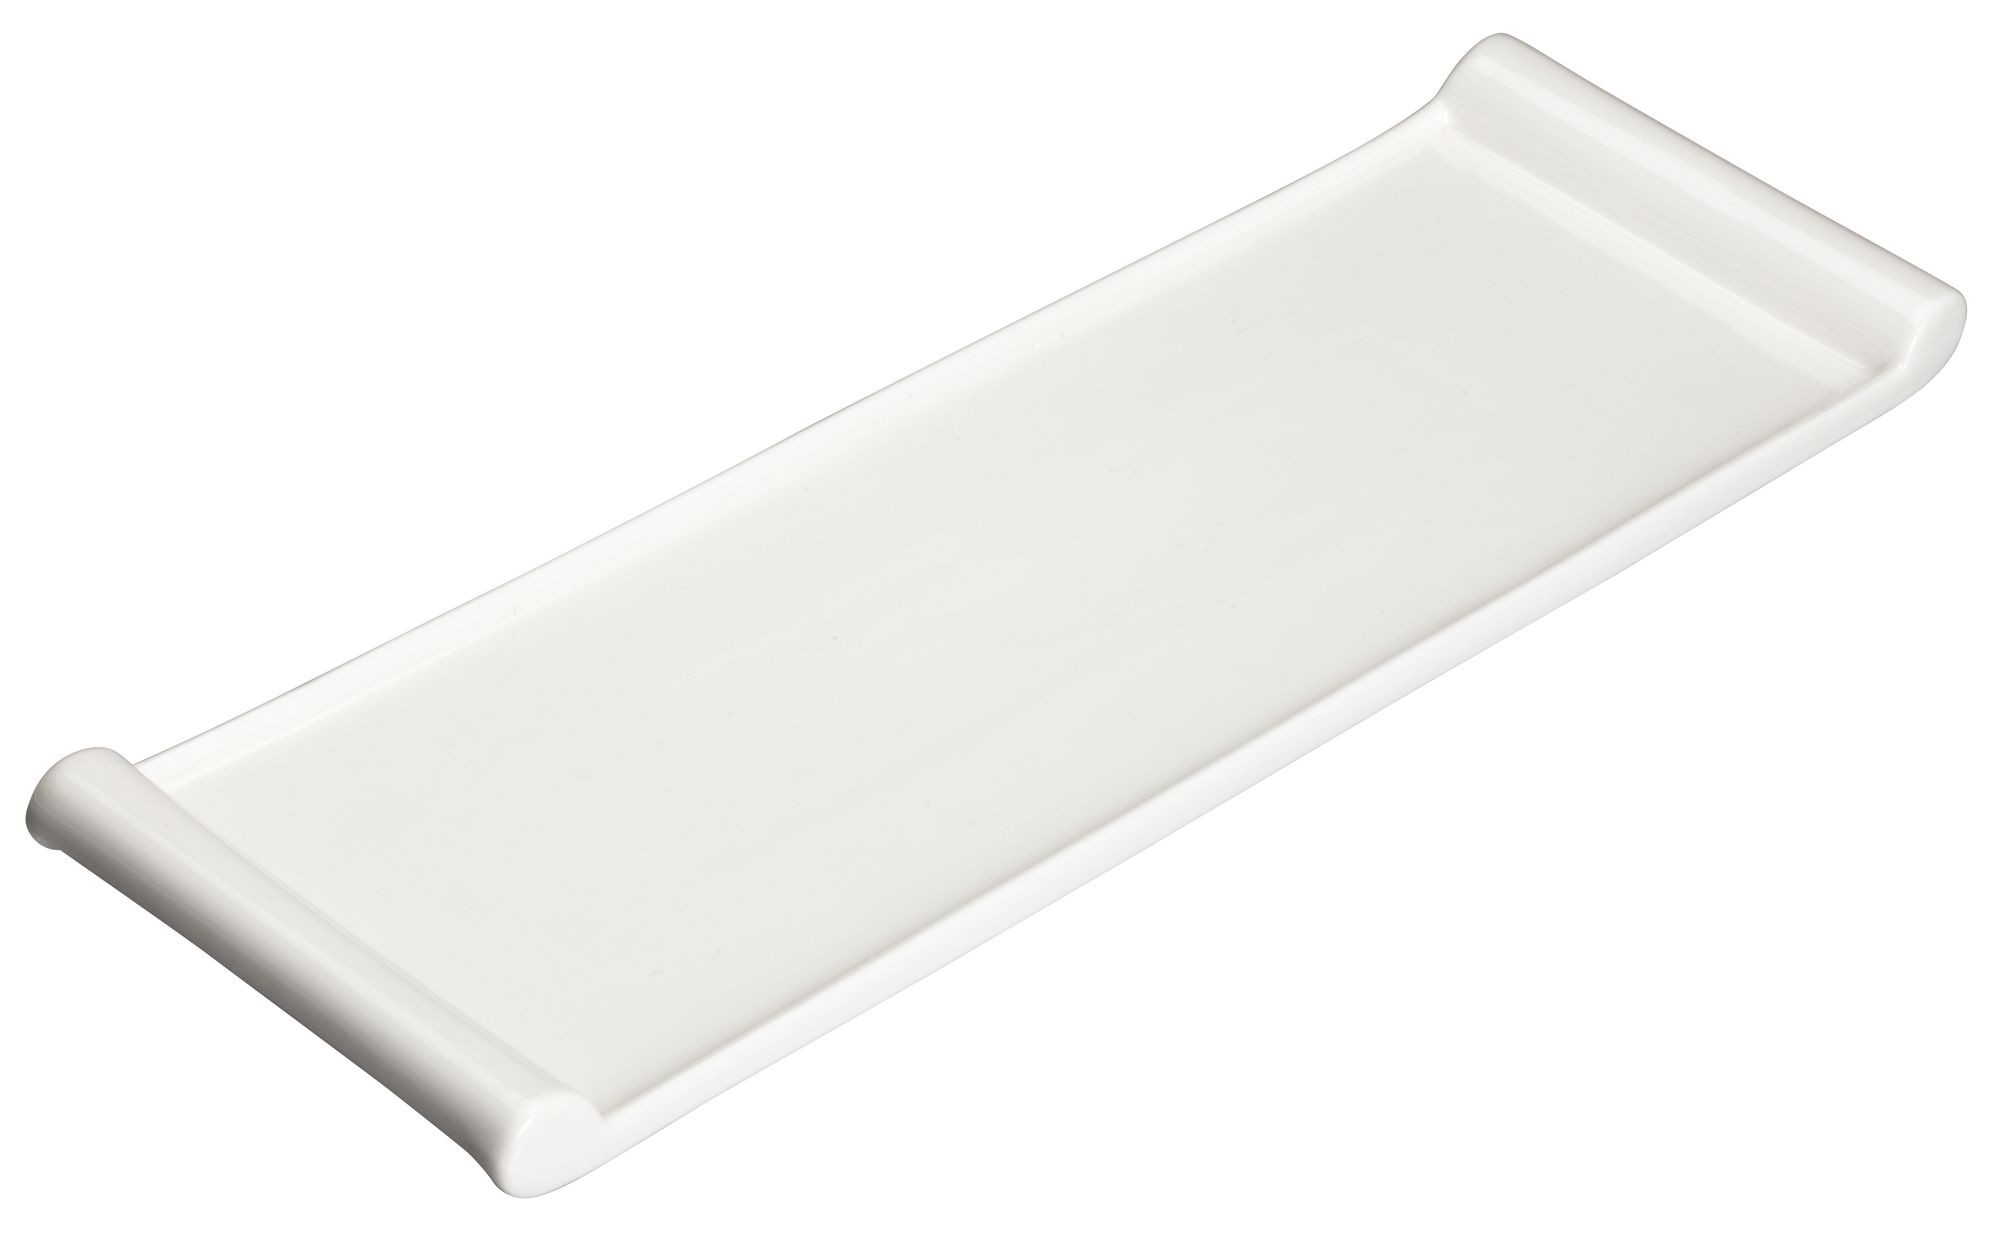 "Winco WDP017-119 Paredes Porcelain Bright White Rectangular Platter 20-1/4"" x 6-1/8"""